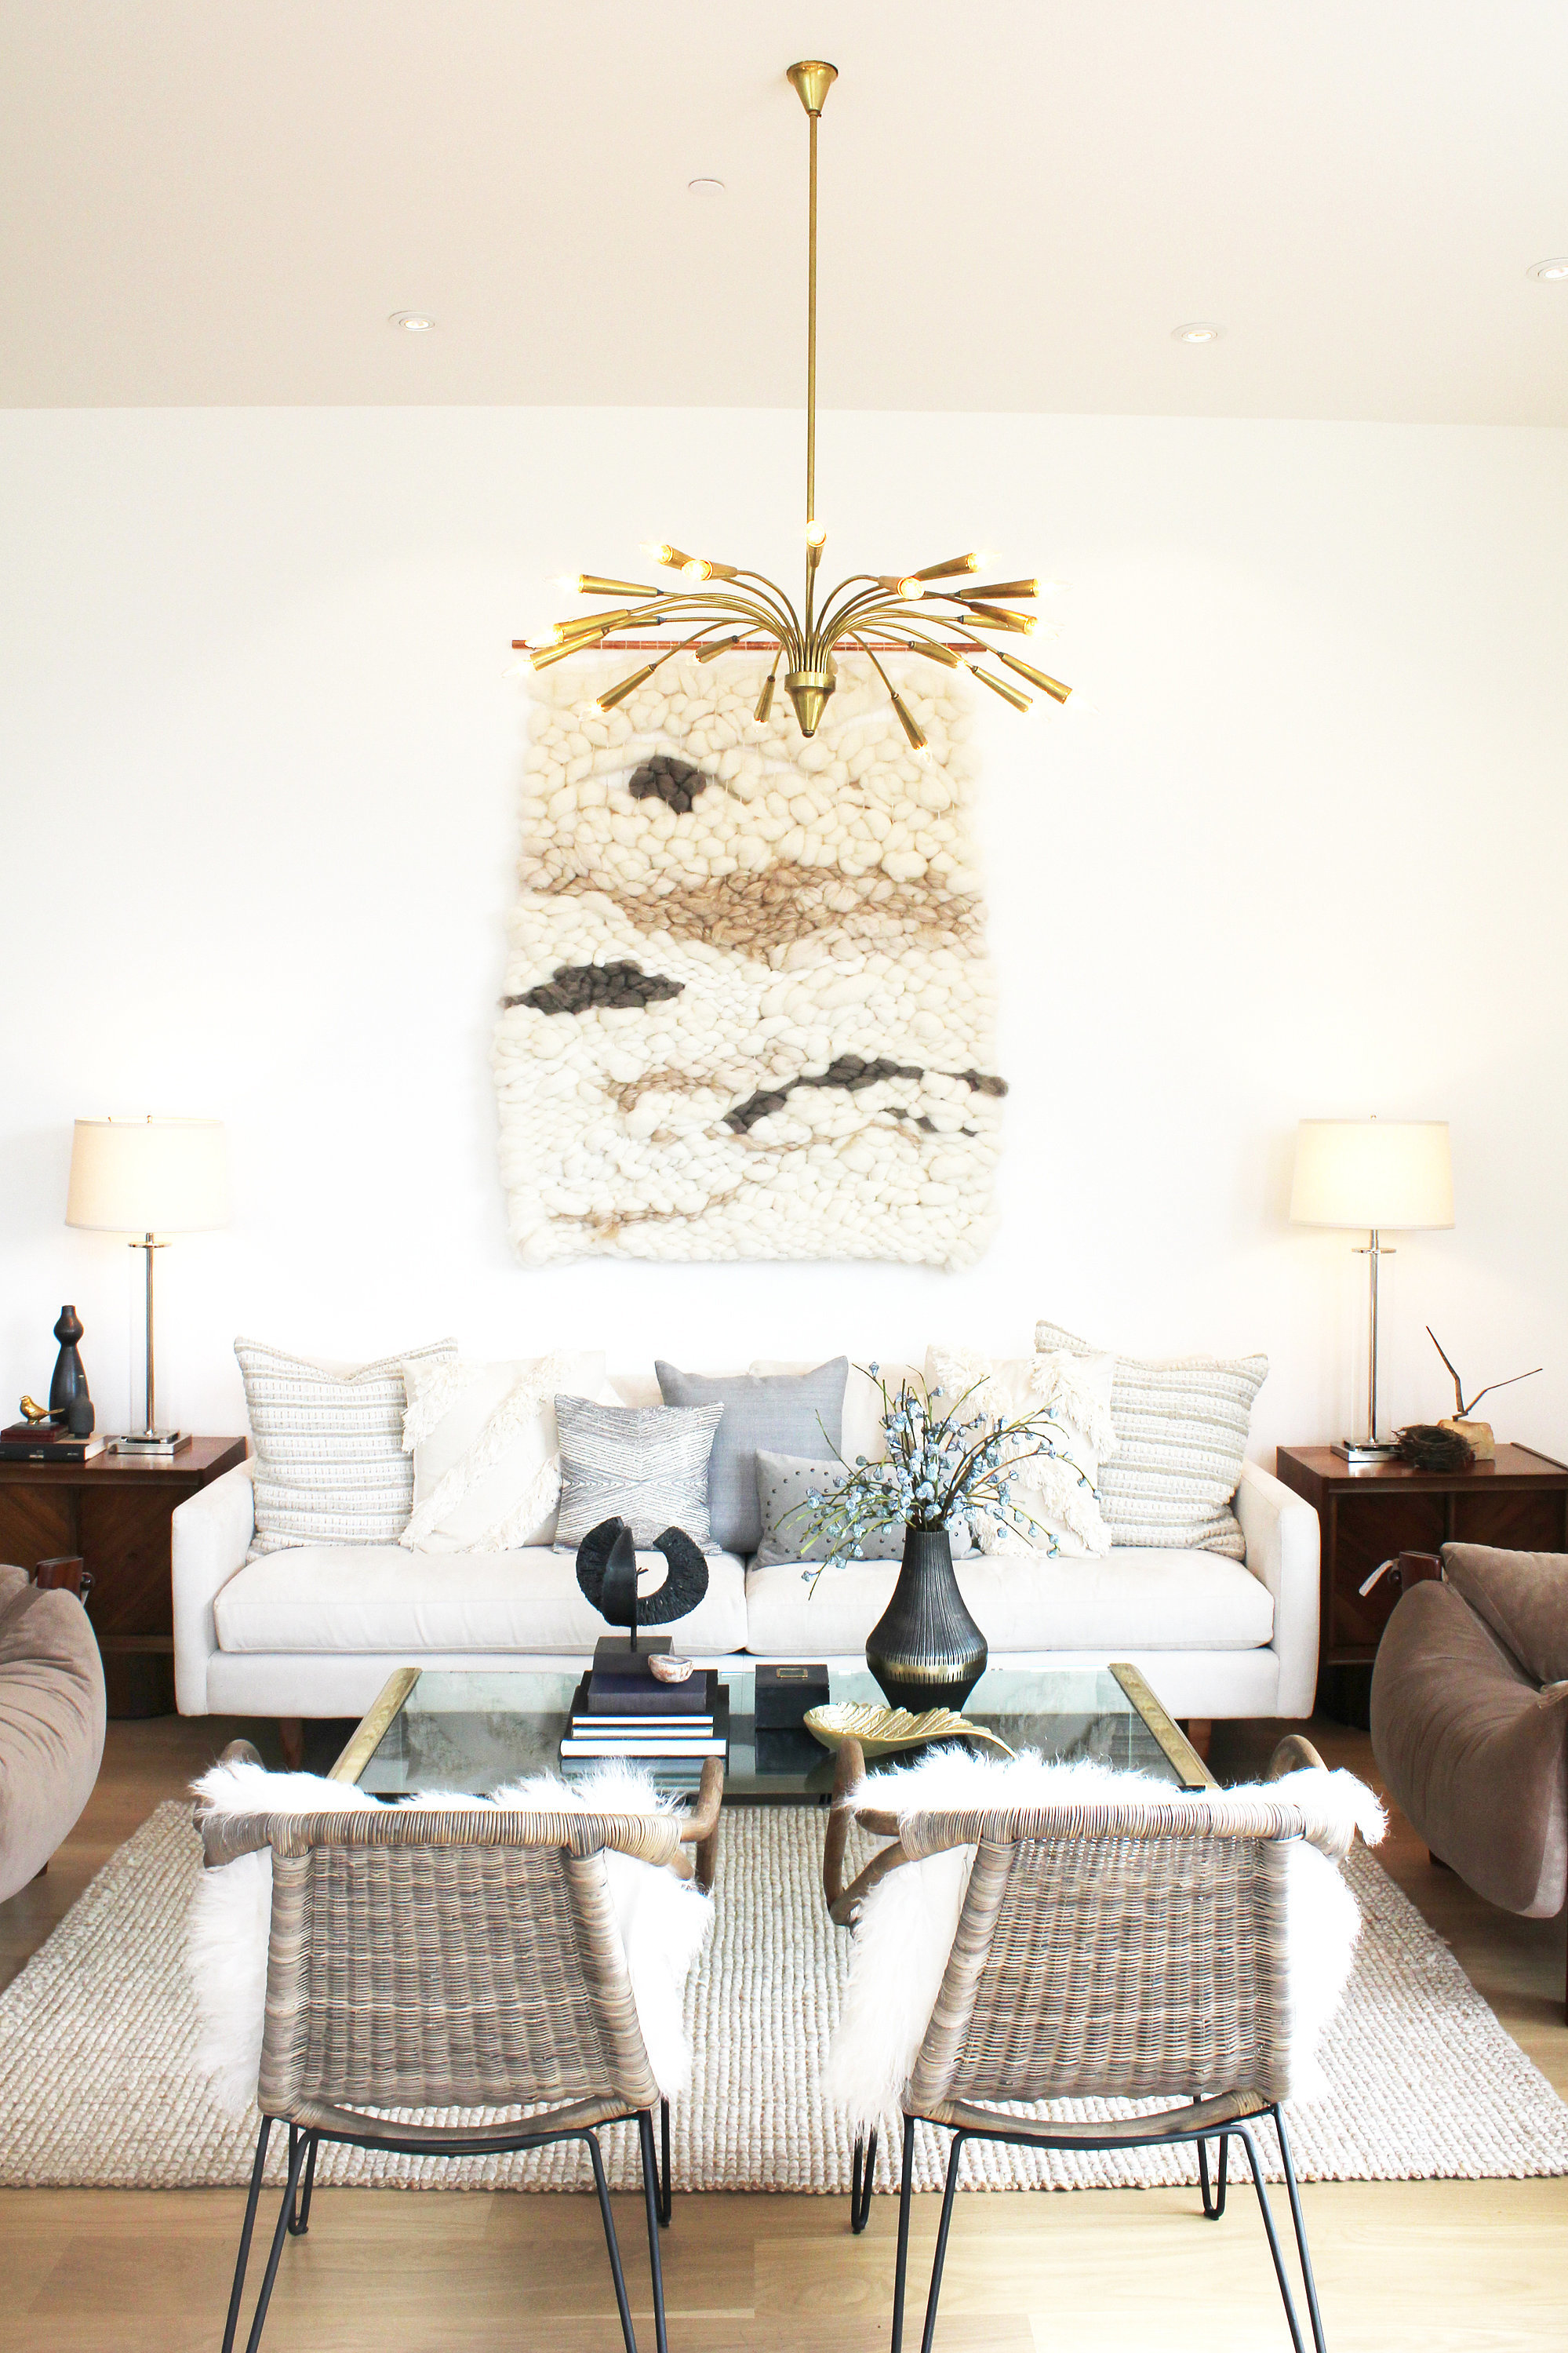 3 Home Decor Trends For Spring Brittany Stager: The Biggest Home Decor Mistakes You Can Make